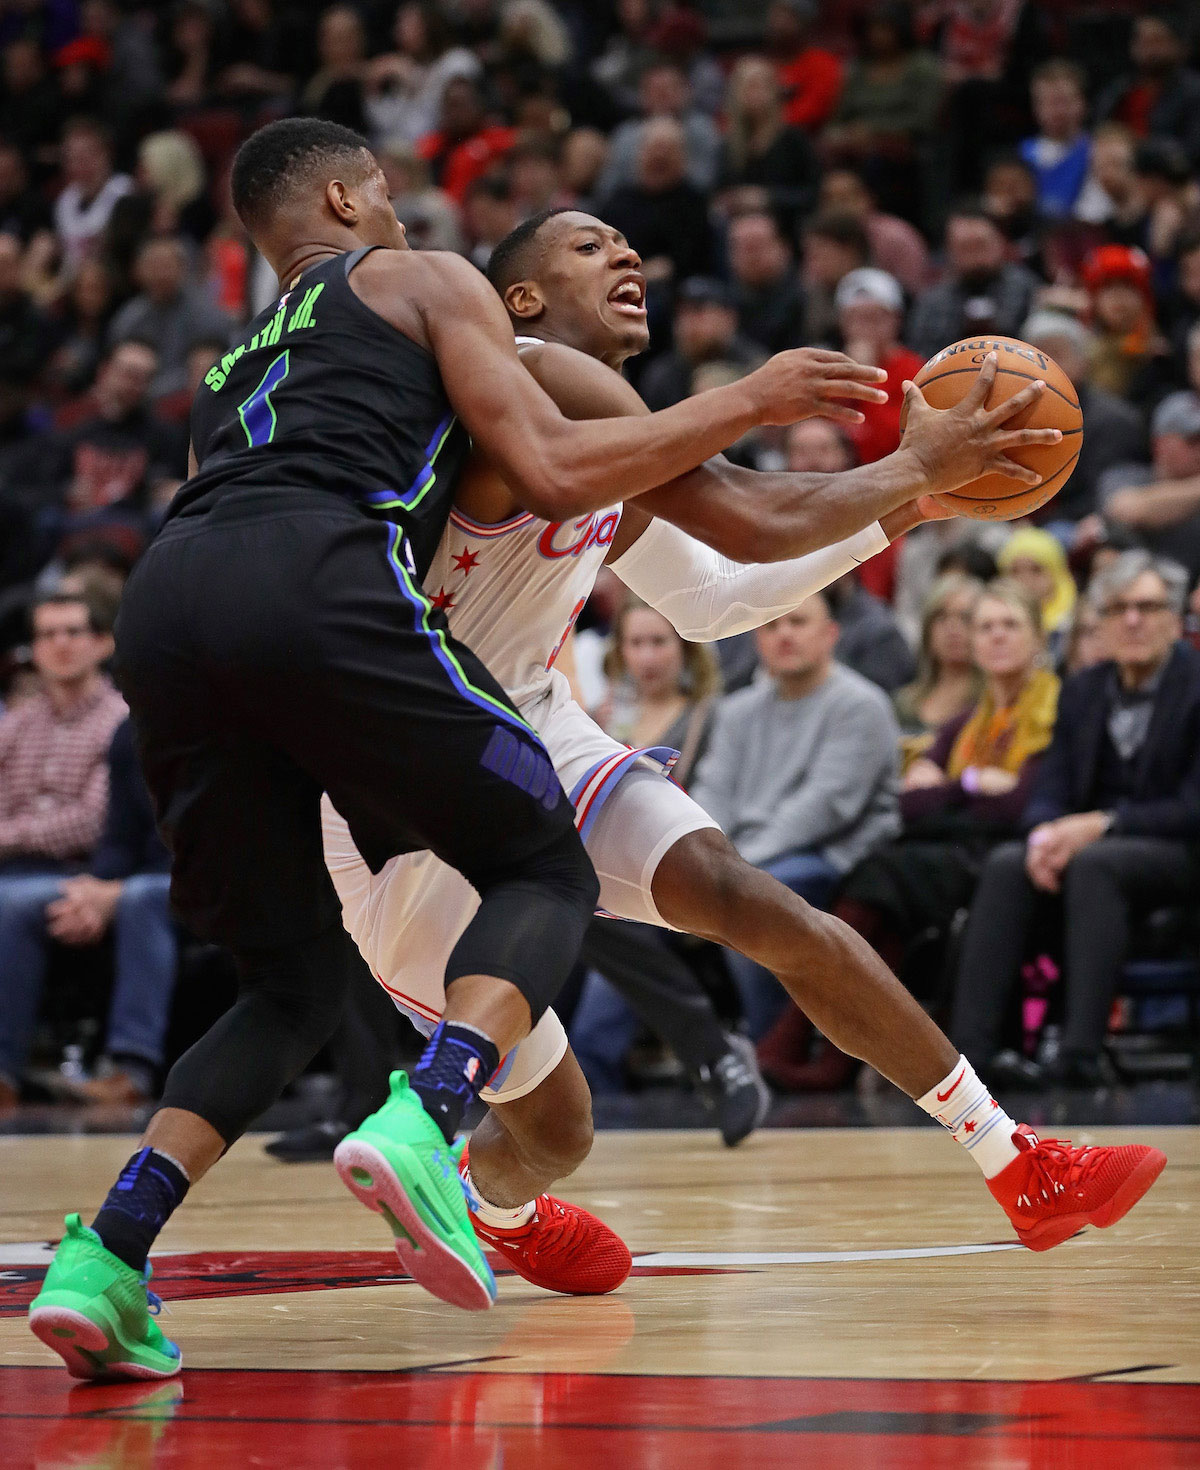 Kris Dunn #32 of the Chicago Bulls drievs against Dennis Smith Jr. #1 of the Dallas Mavericks